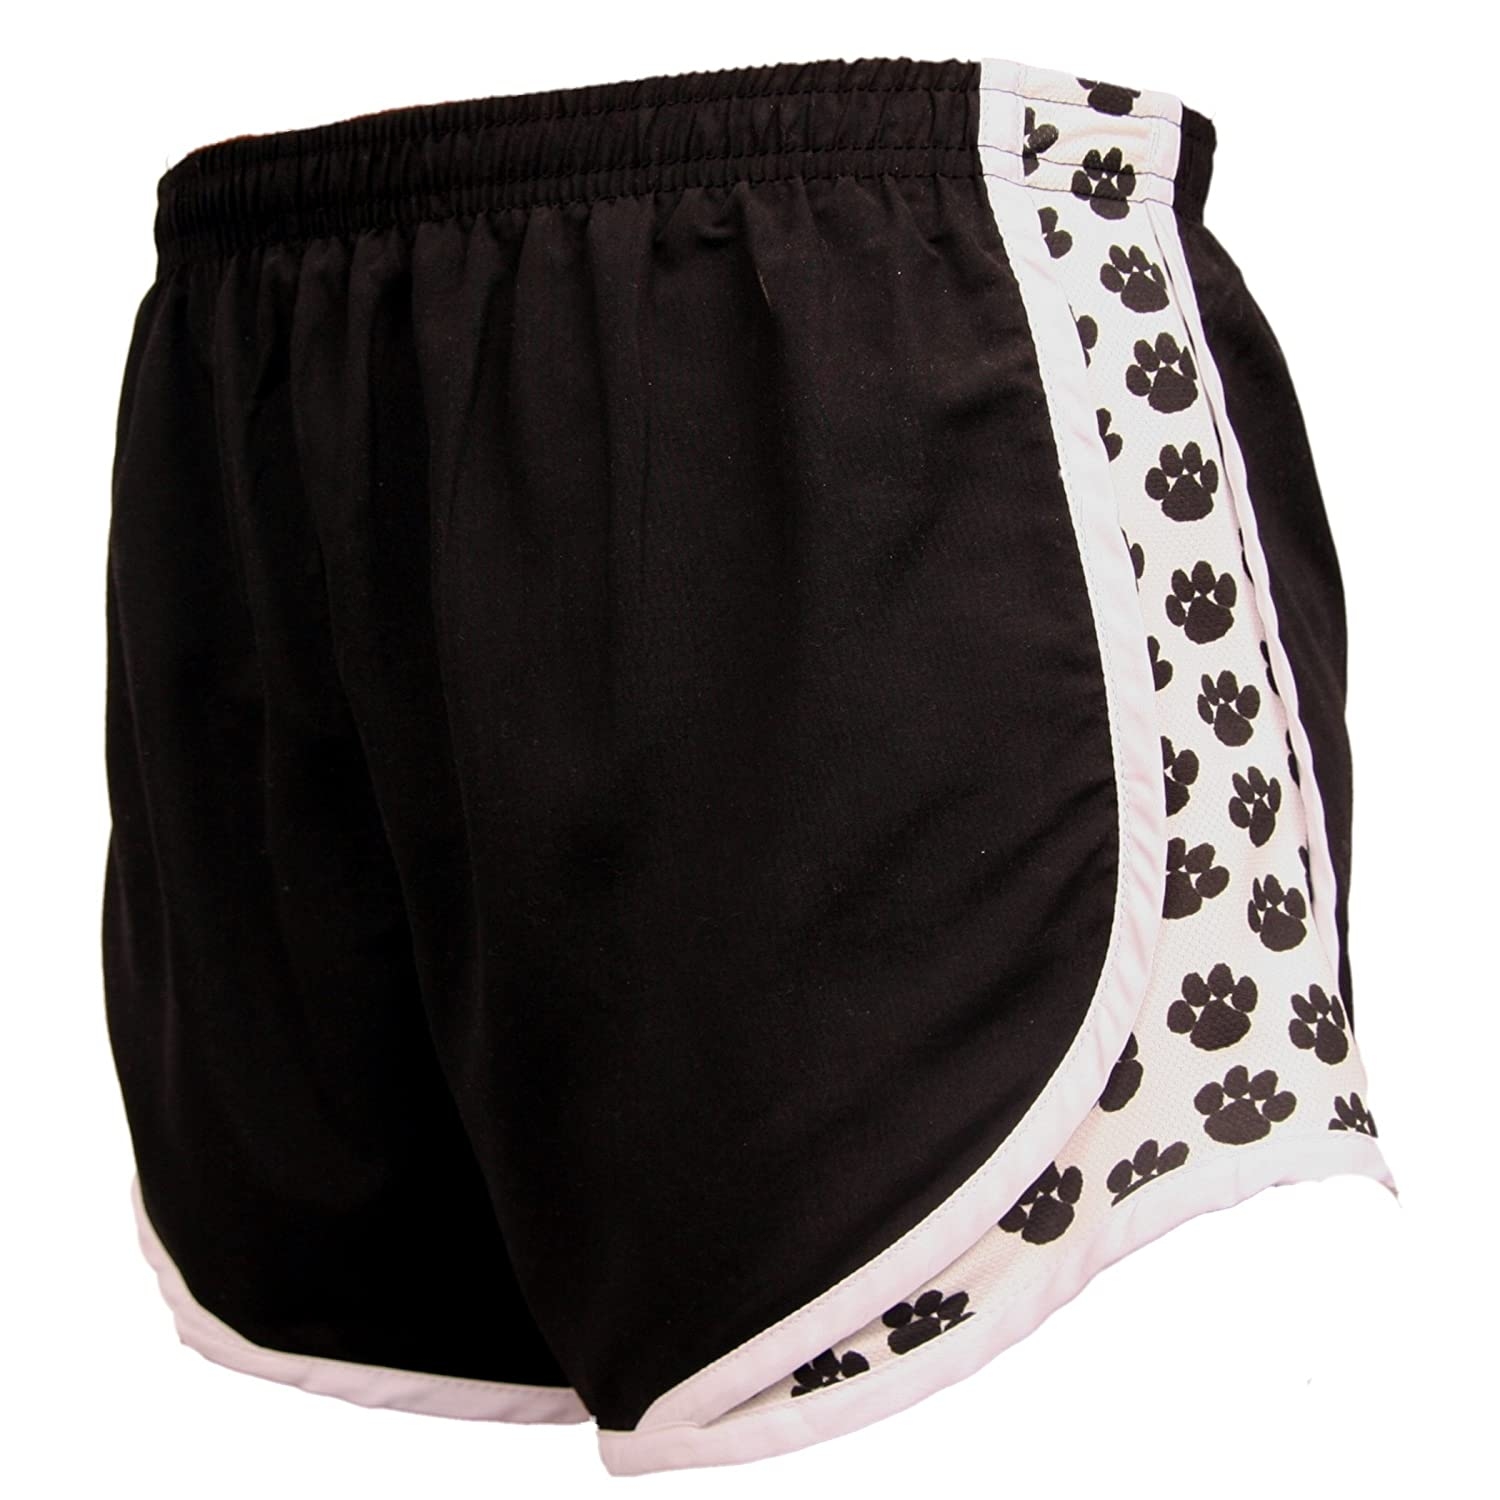 Touch of Europe Shorts Women's Paw Print sport velocity